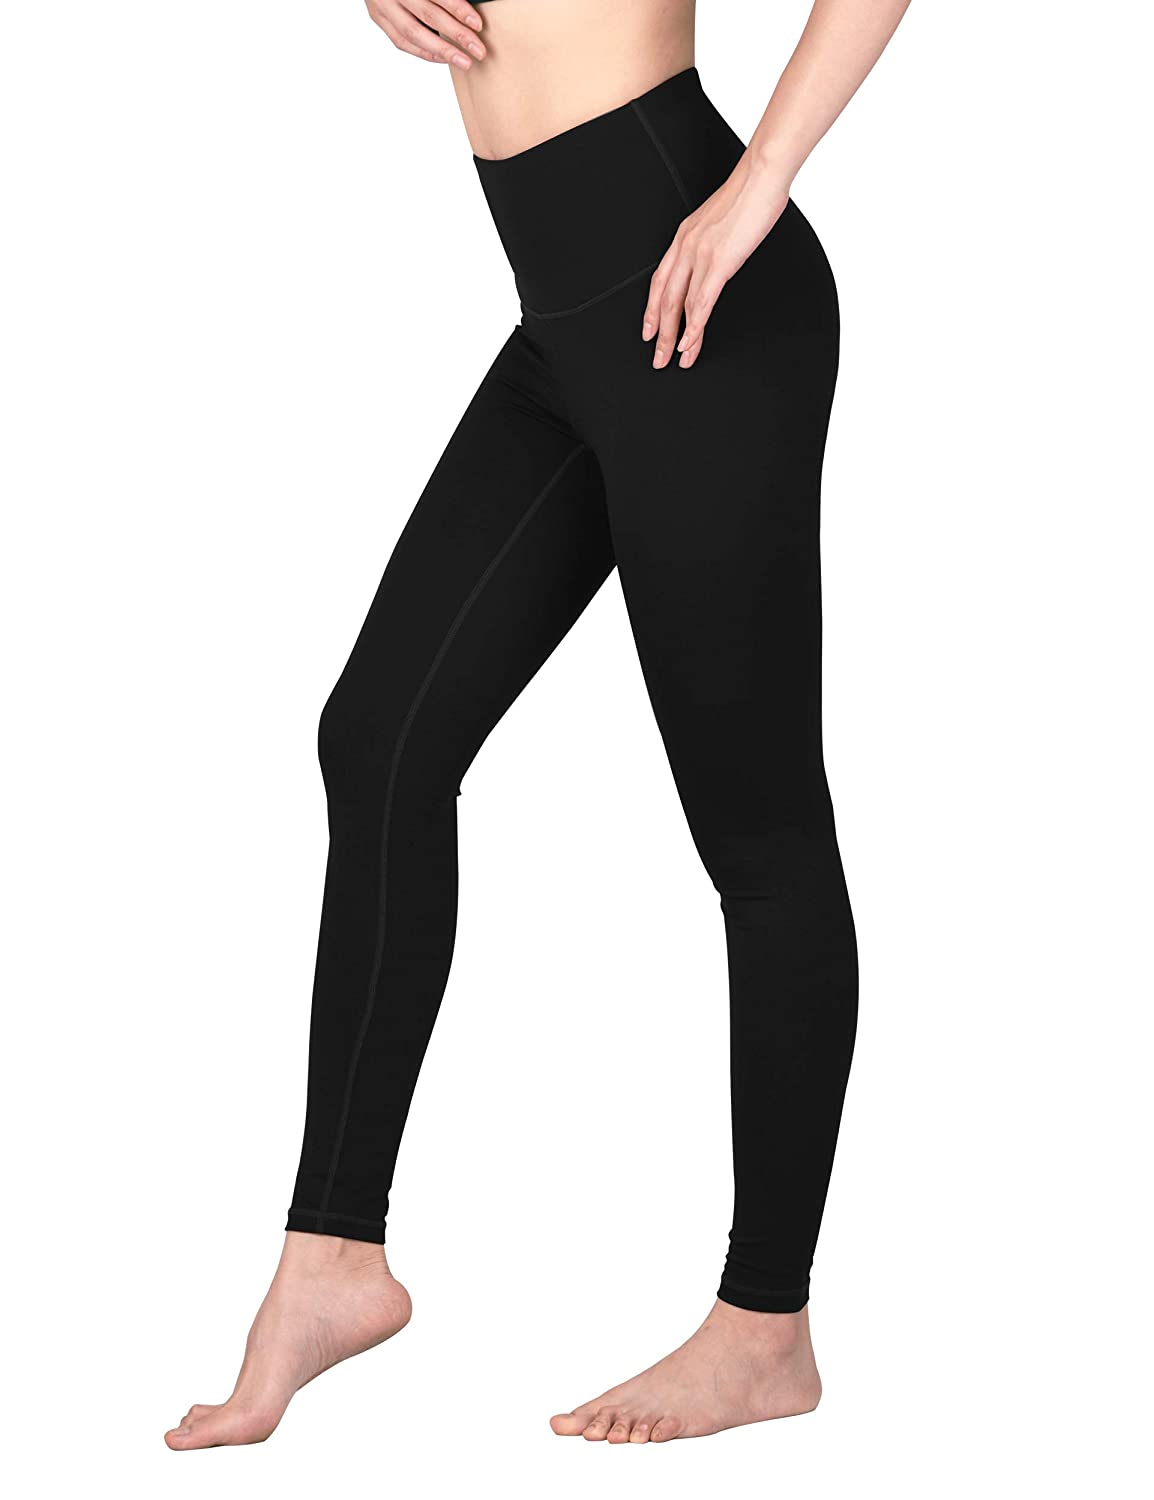 ee7d2222d6 Amazon.com: DOVPOD Printed Yoga Pants High Waist Fitness Plus Size Workout  Leggings Tommy Control Capris for Women: Clothing